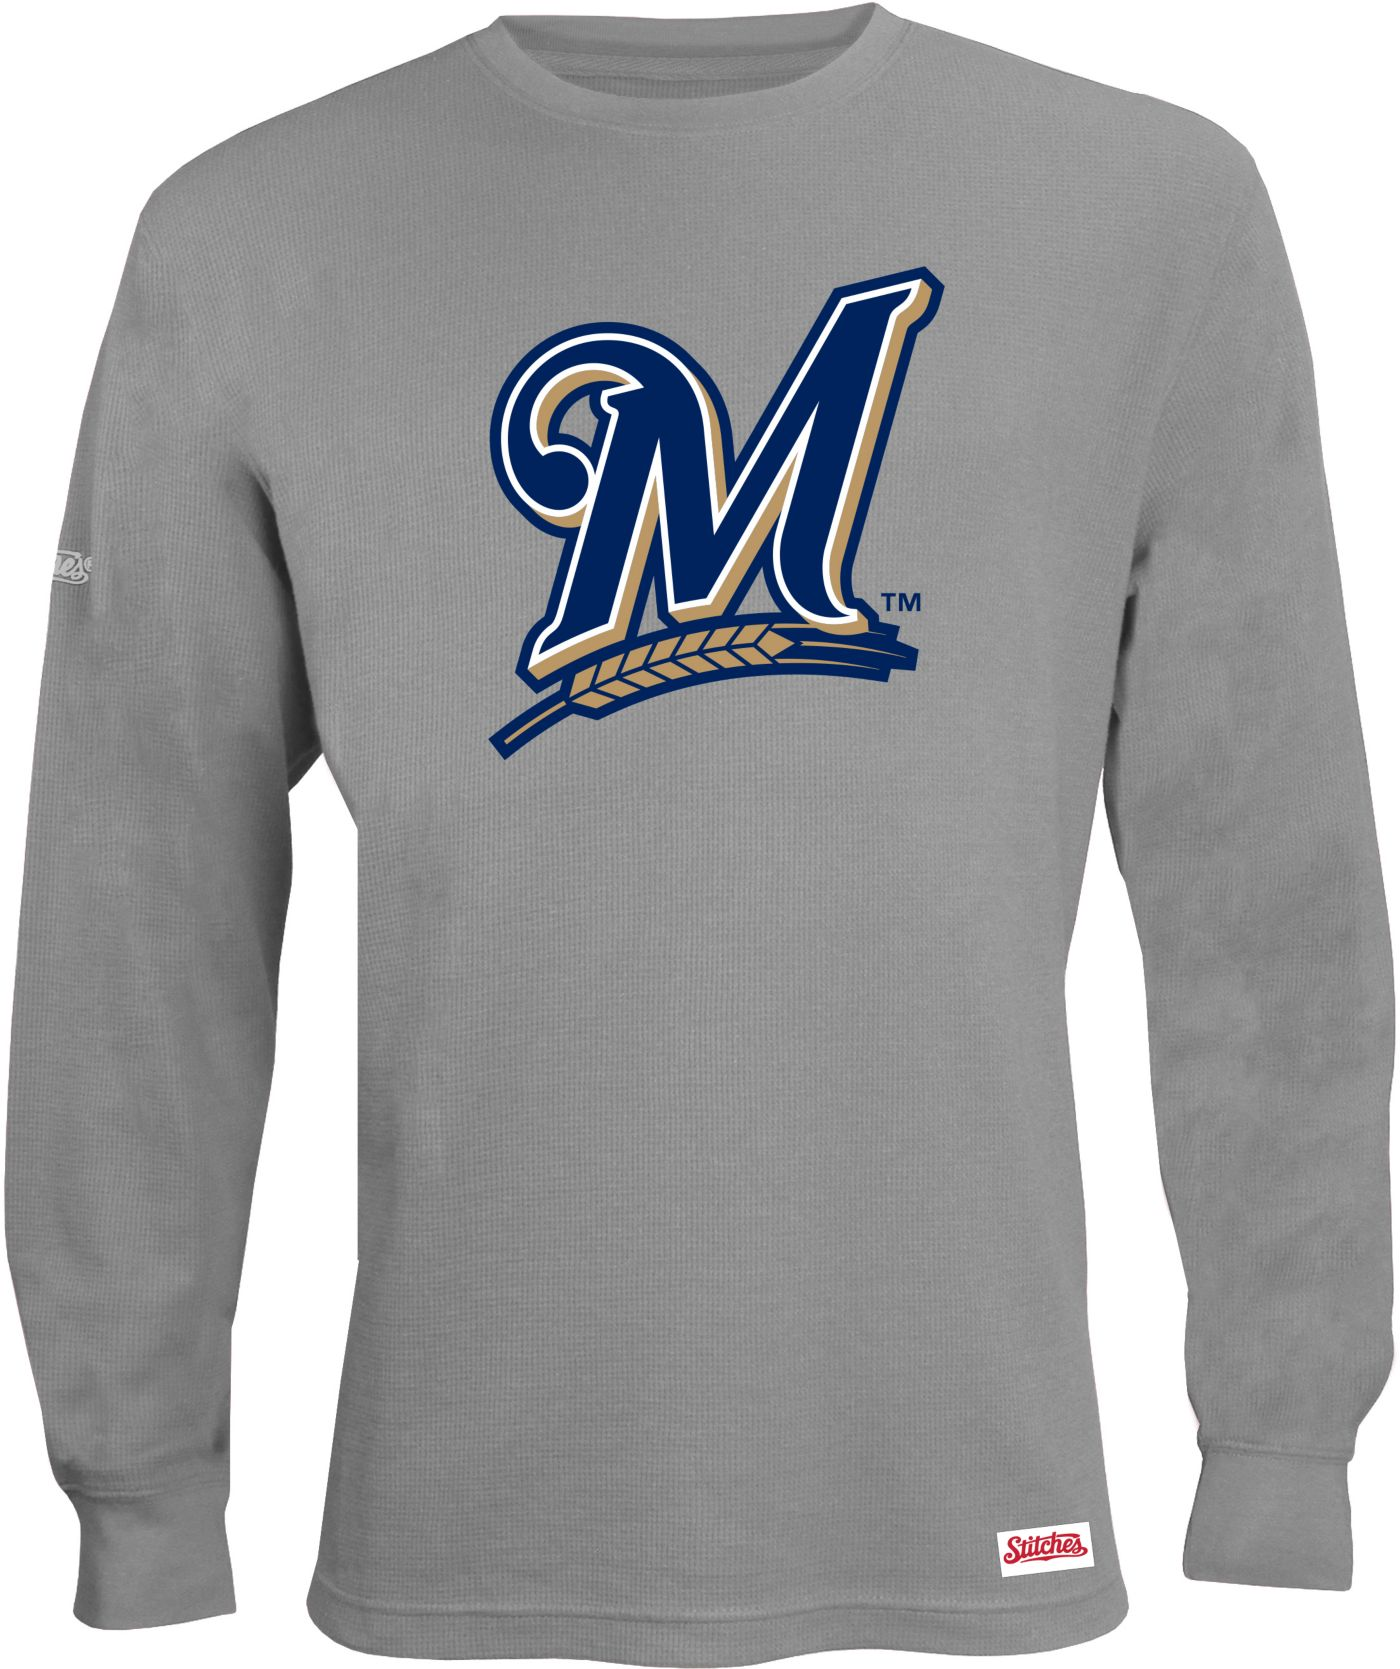 Stitches Men's Milwaukee Brewers Thermal Long Sleeve Fleece